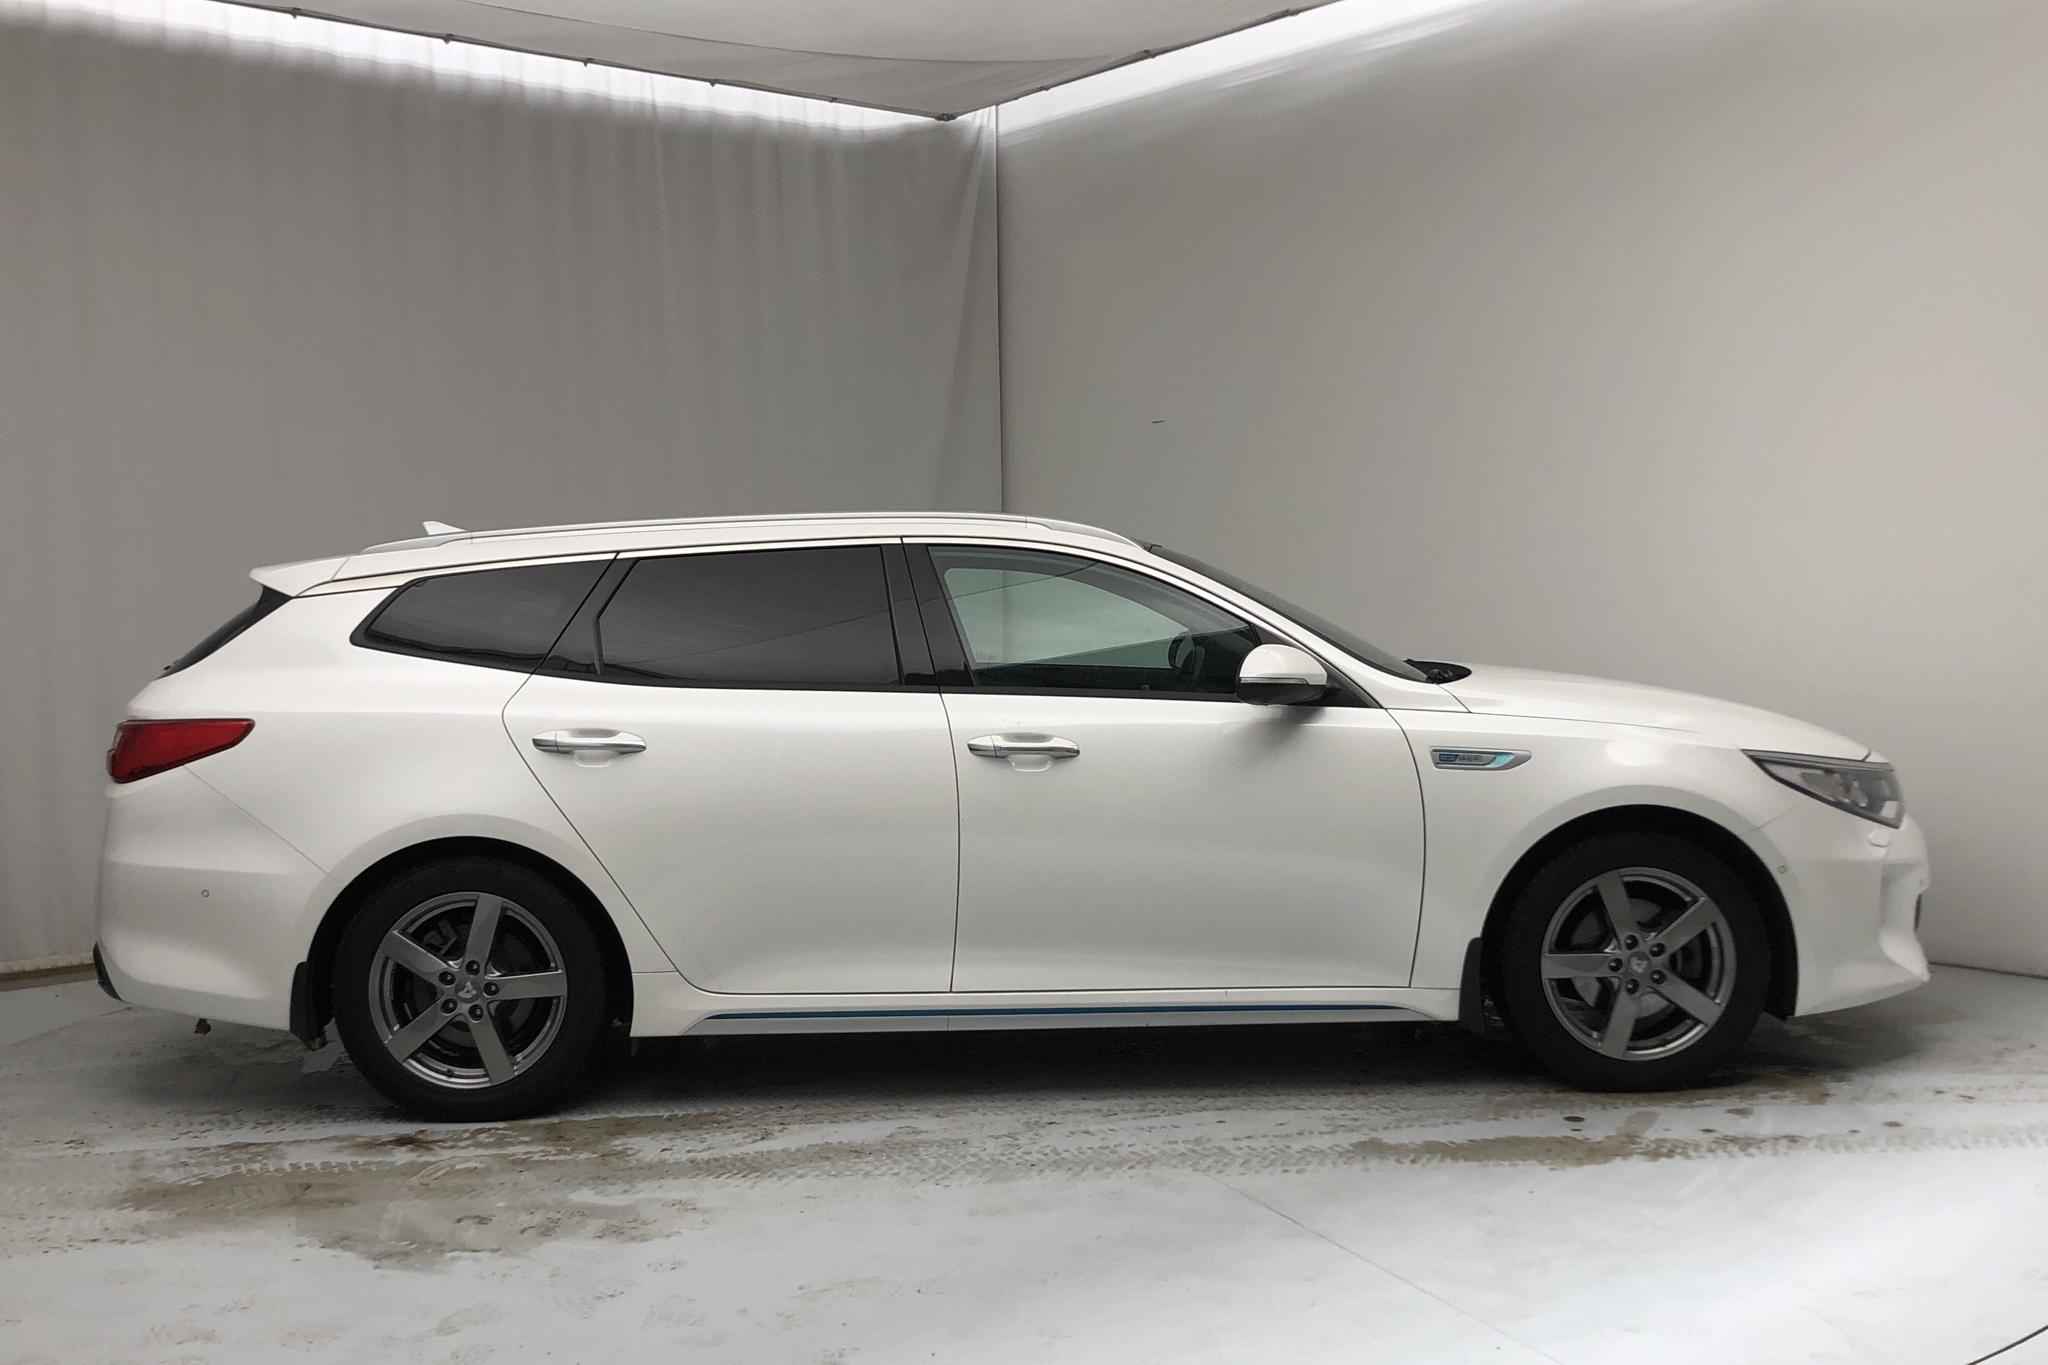 KIA Optima 2.0 GDi Plug-in Hybrid SW (205hk) - 81 110 km - Automatic - white - 2018